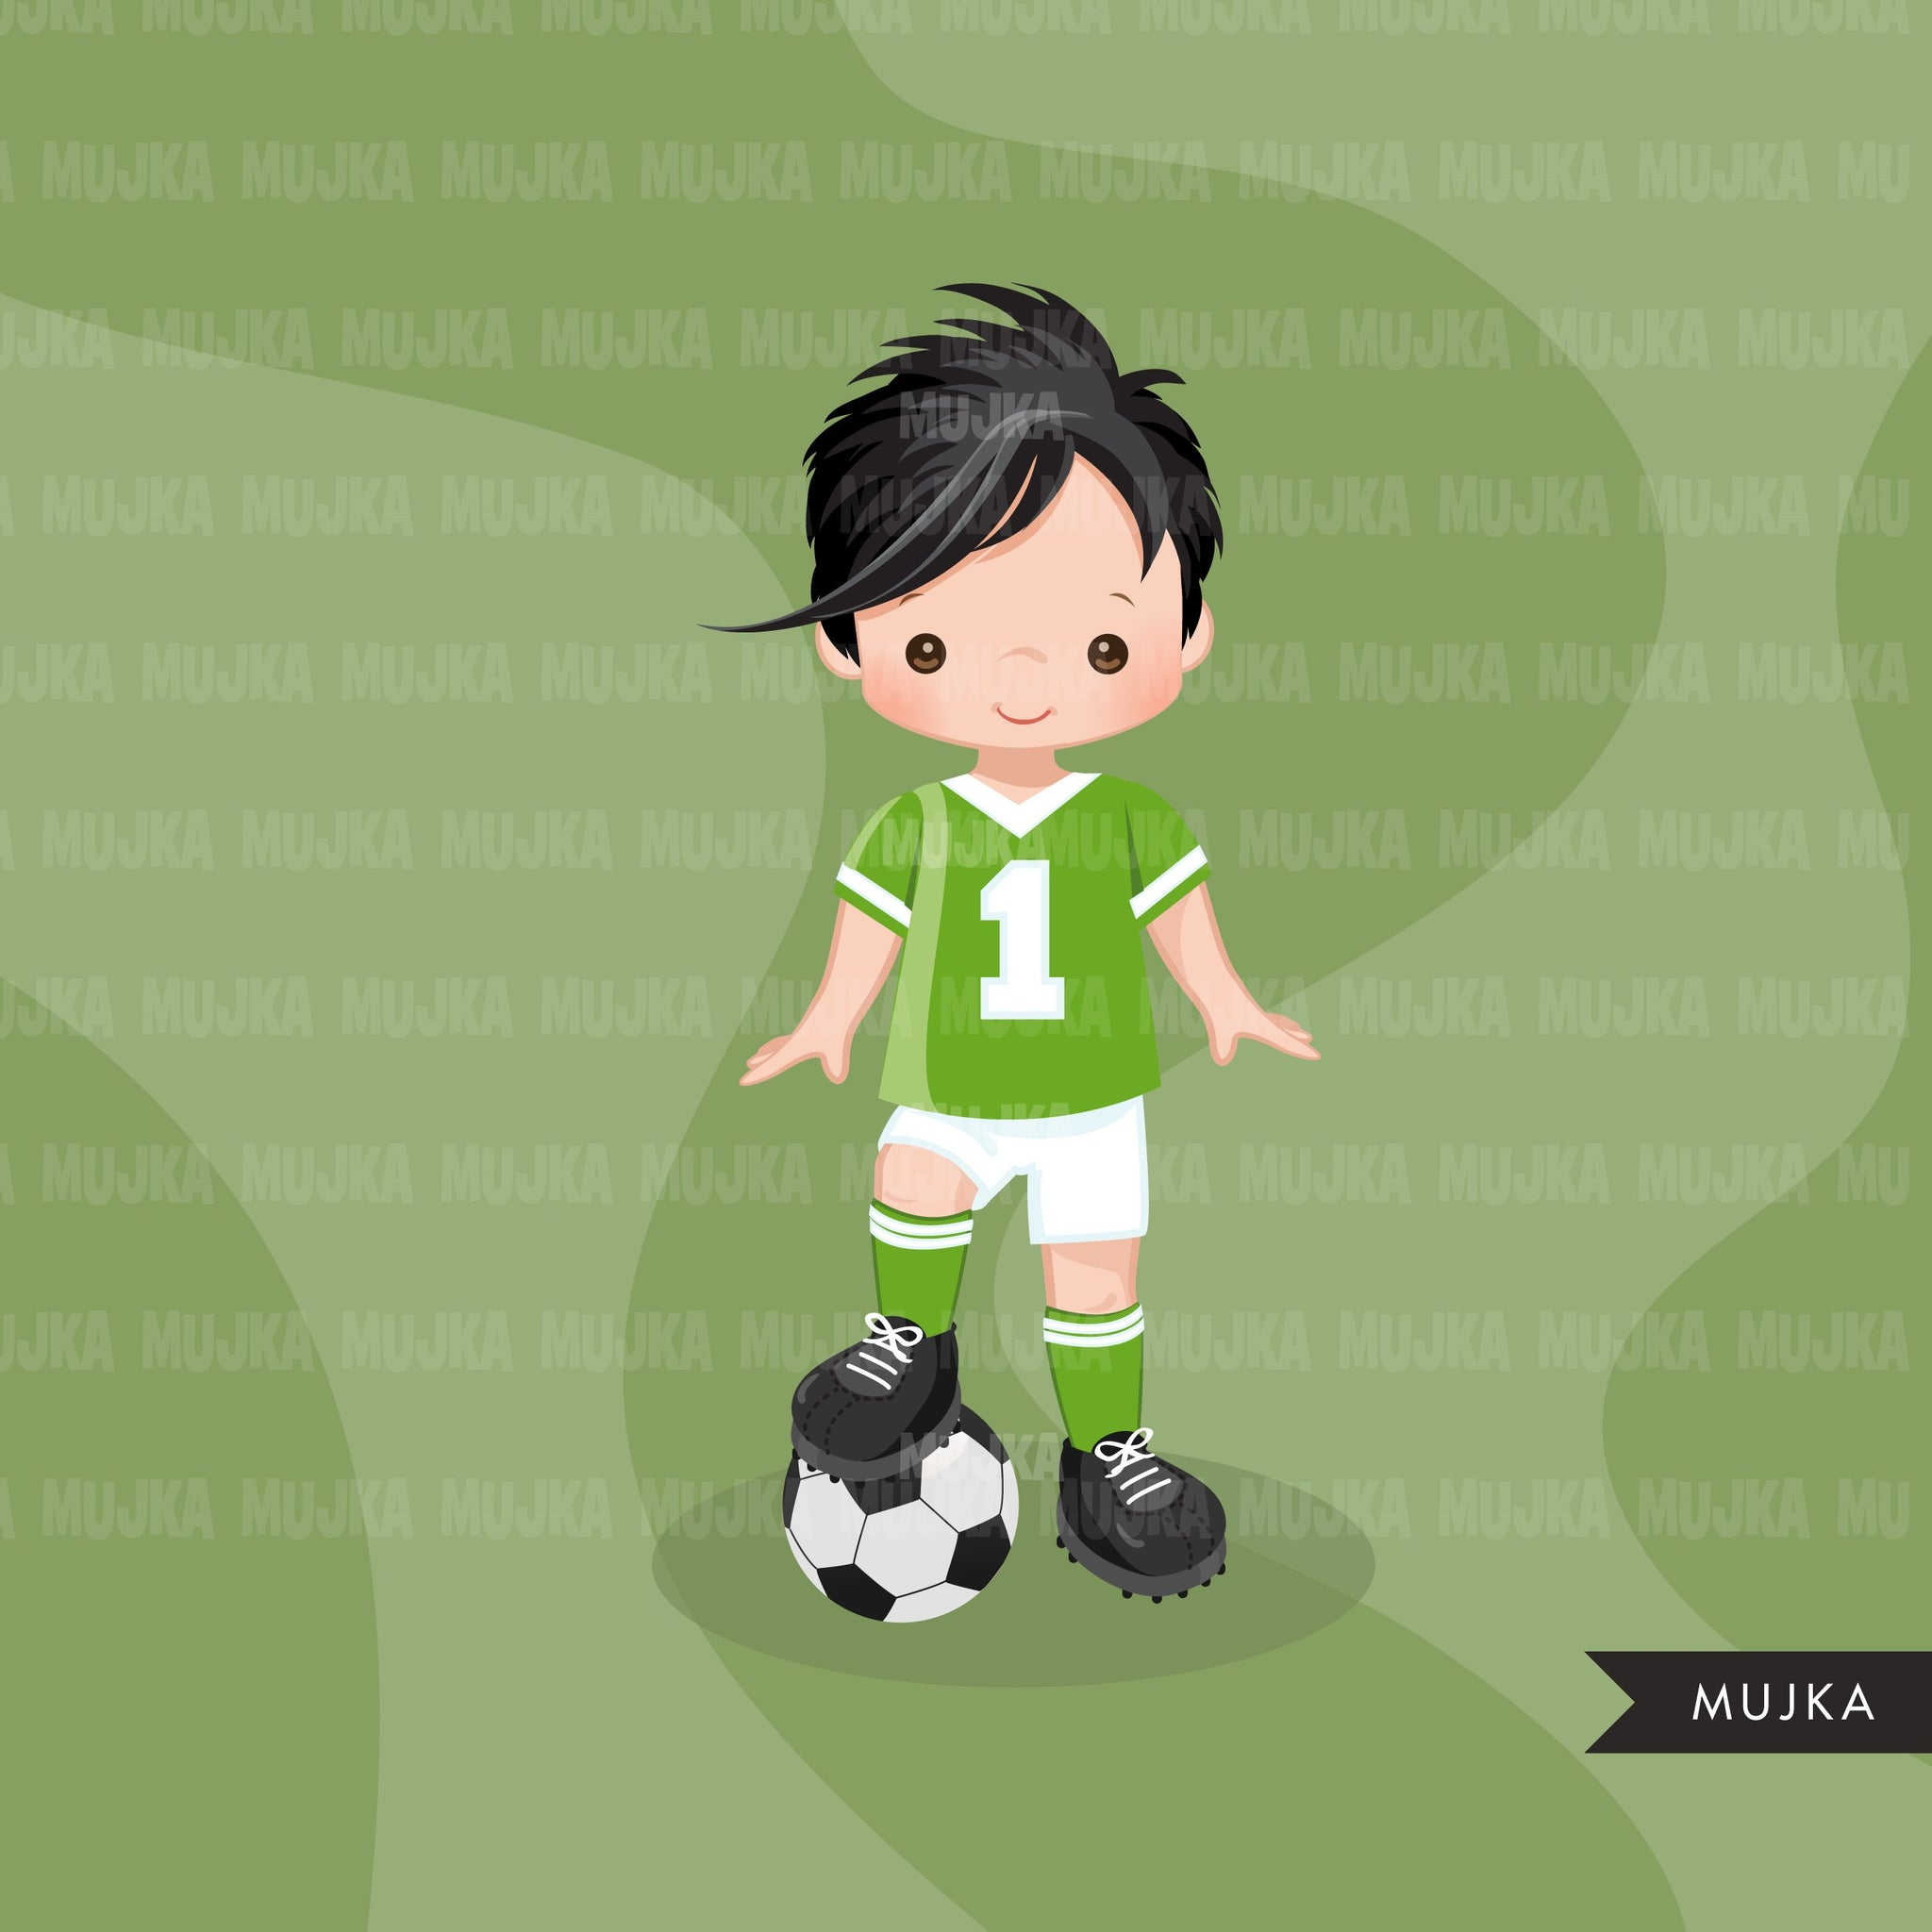 Soccer clipart, boy in green jersey